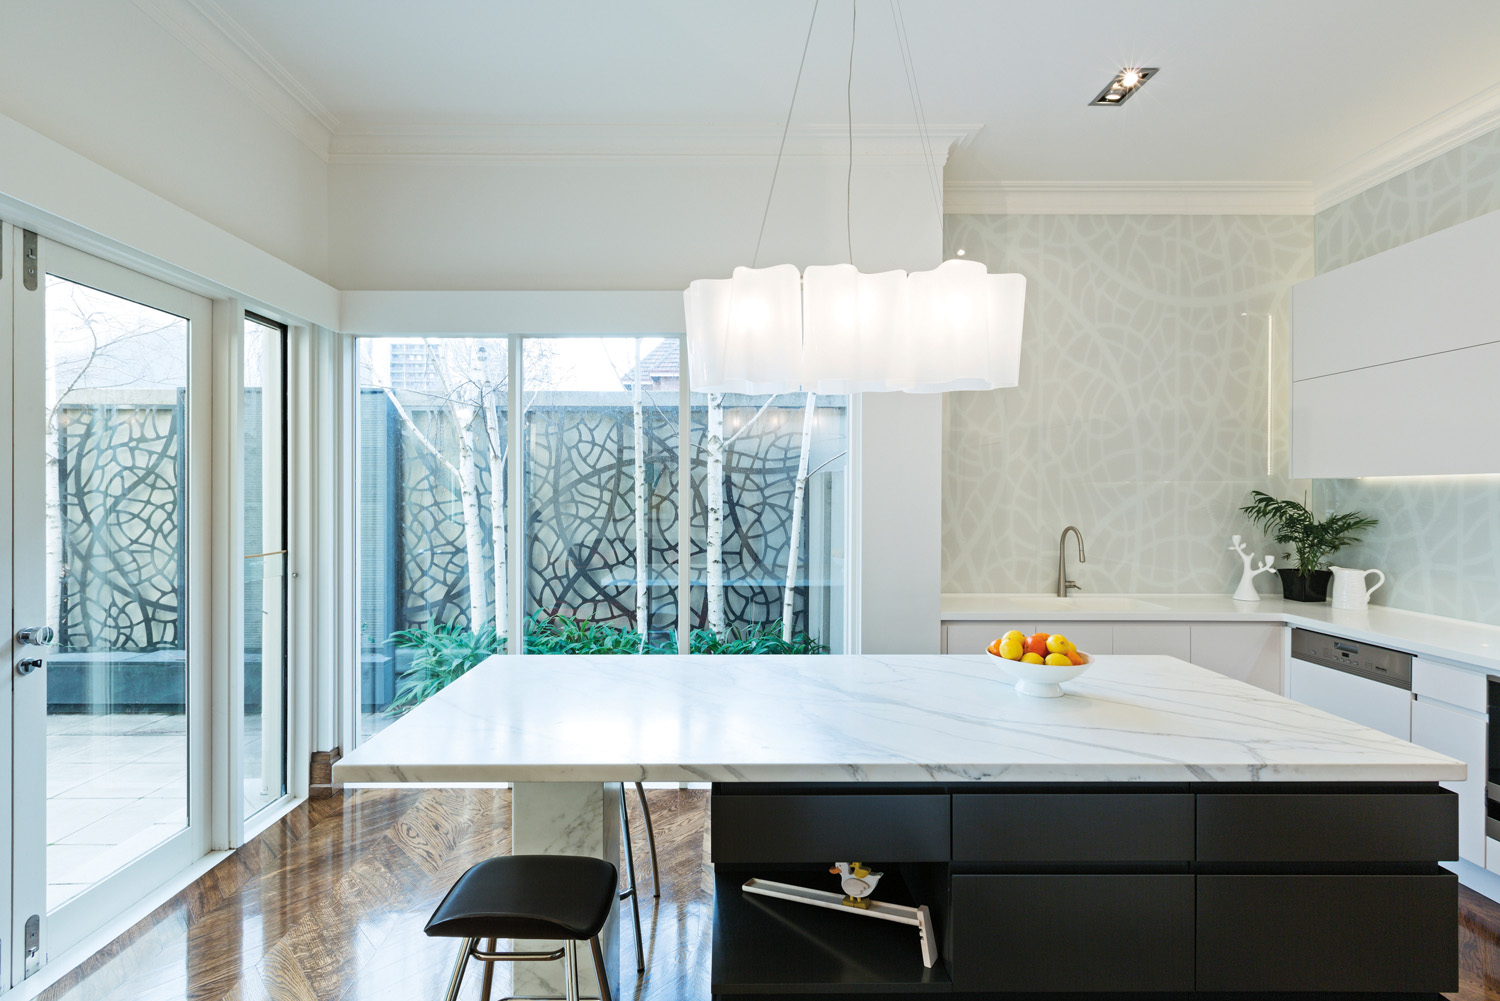 A fresh look: kitchen renovation - Completehome